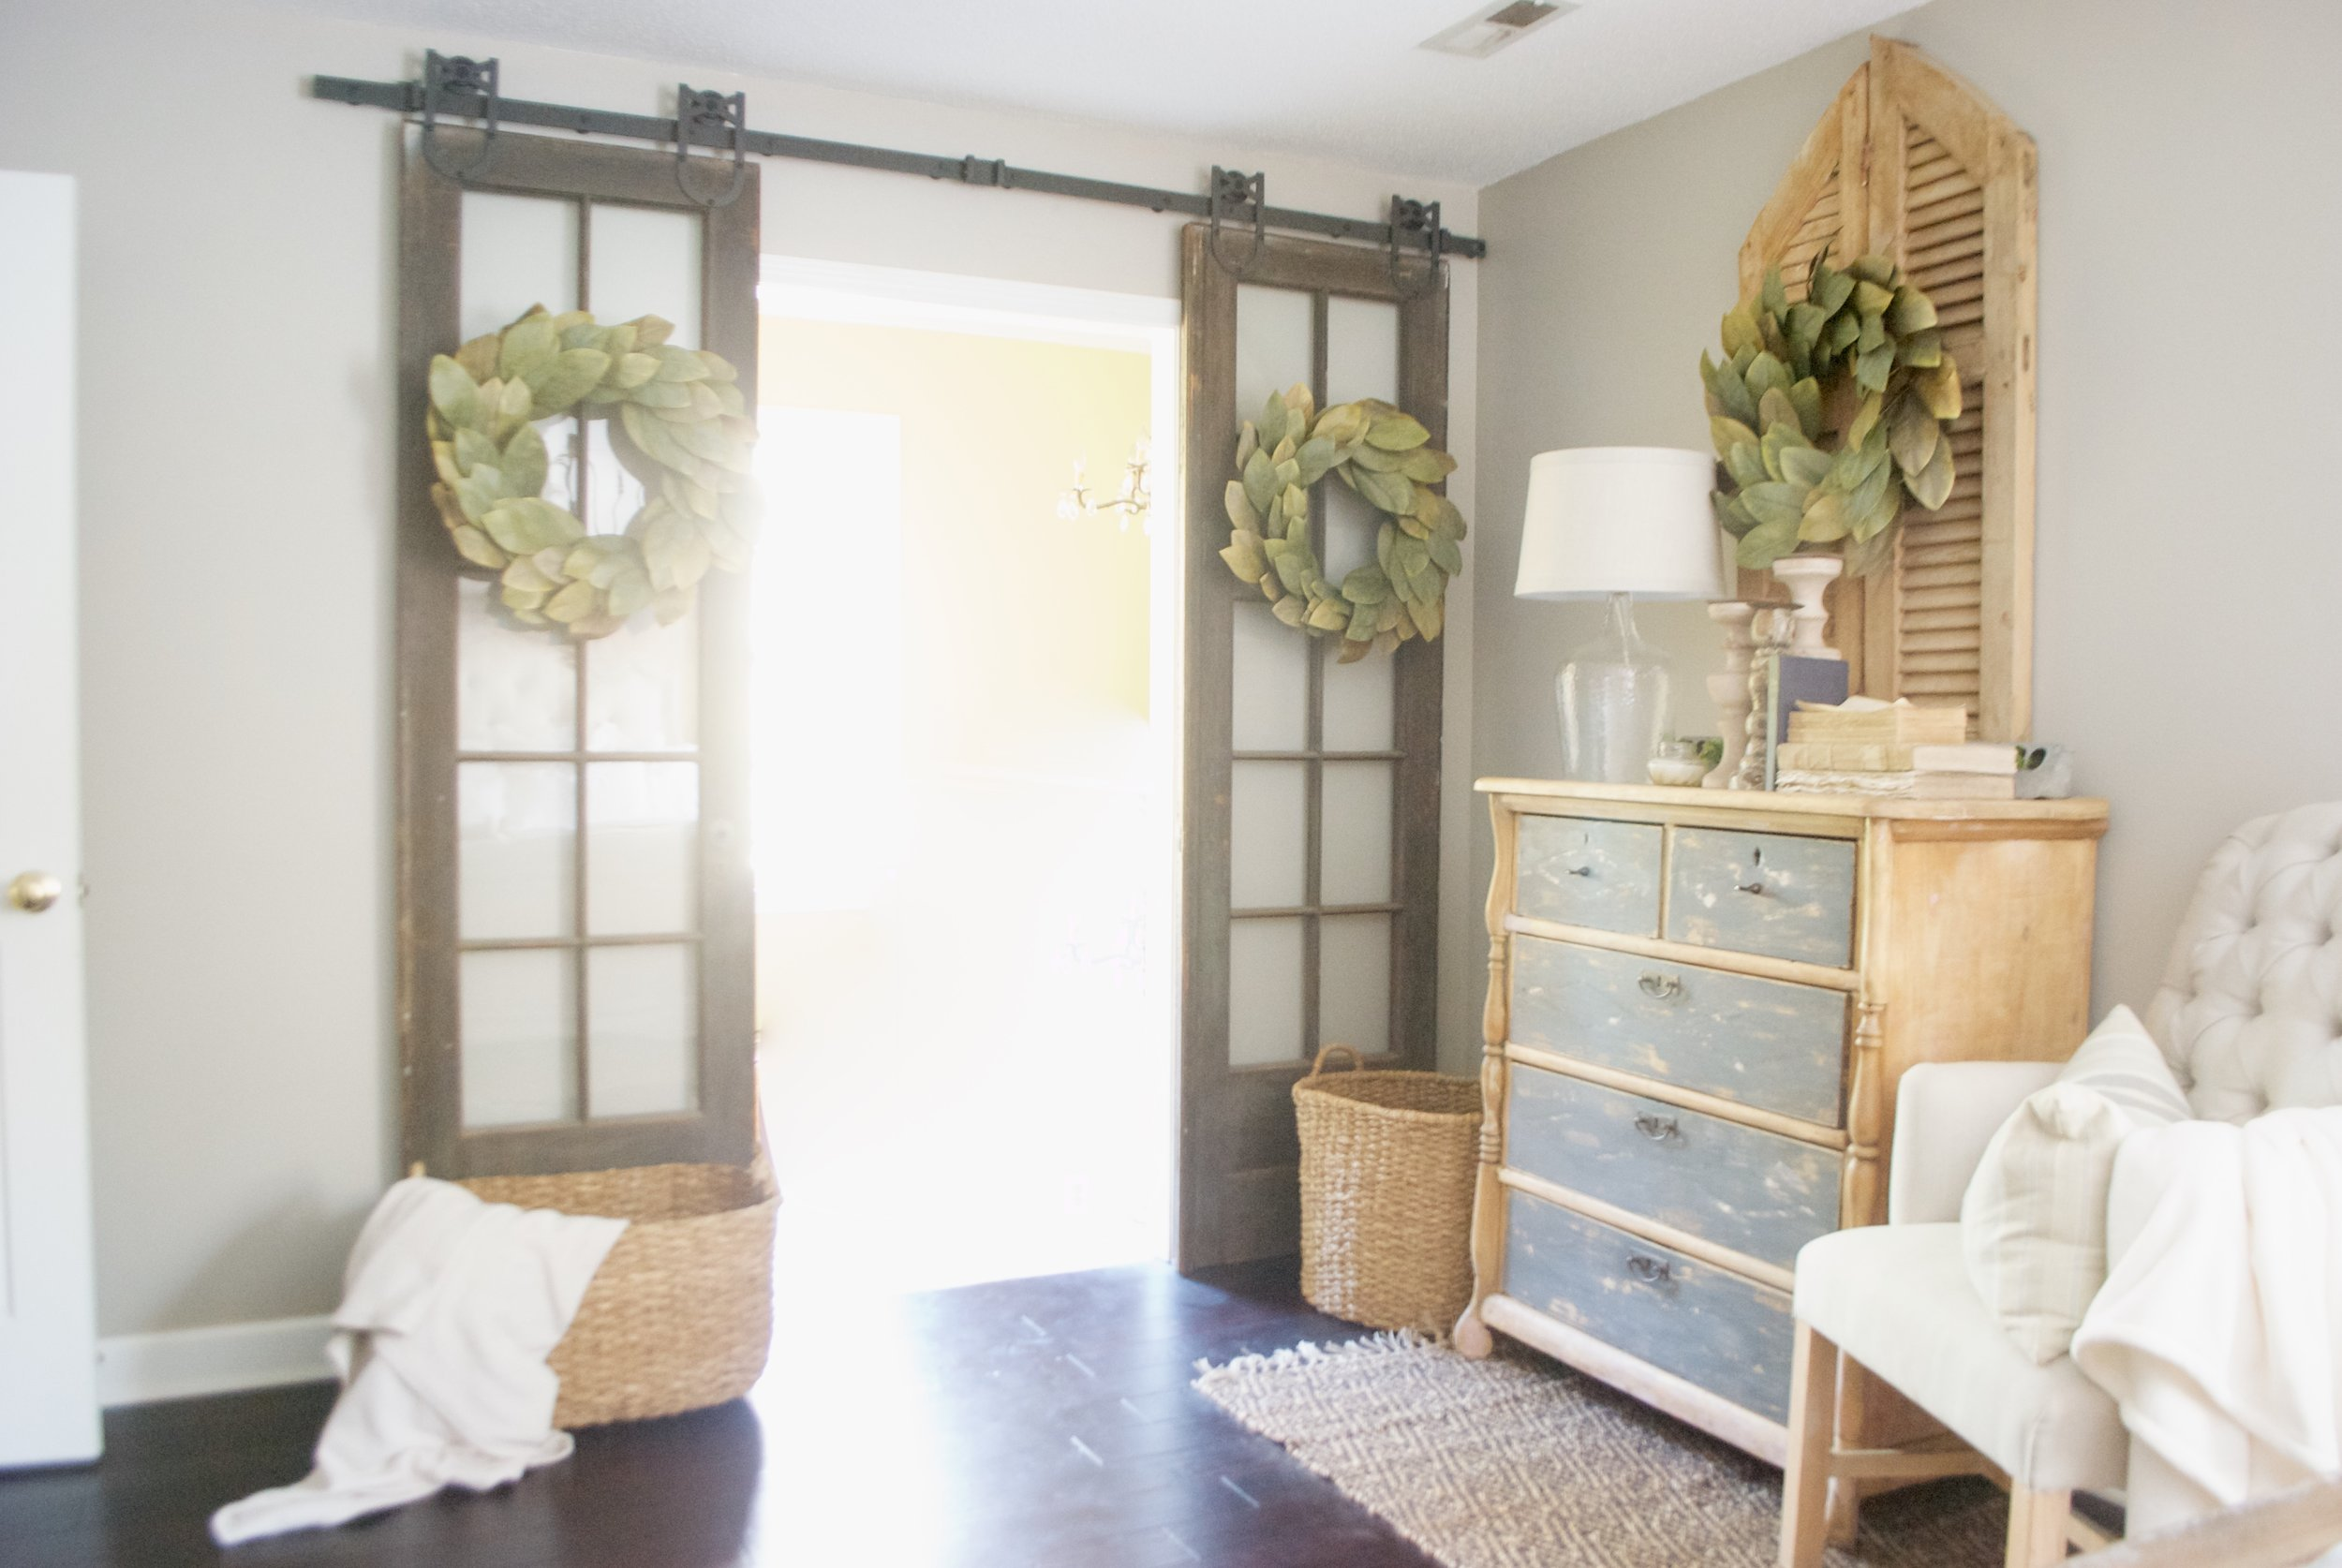 Plum Pretty Decor and Design Farmhouse Master Bedroom Tour- French Doors on Barn Door Hardware